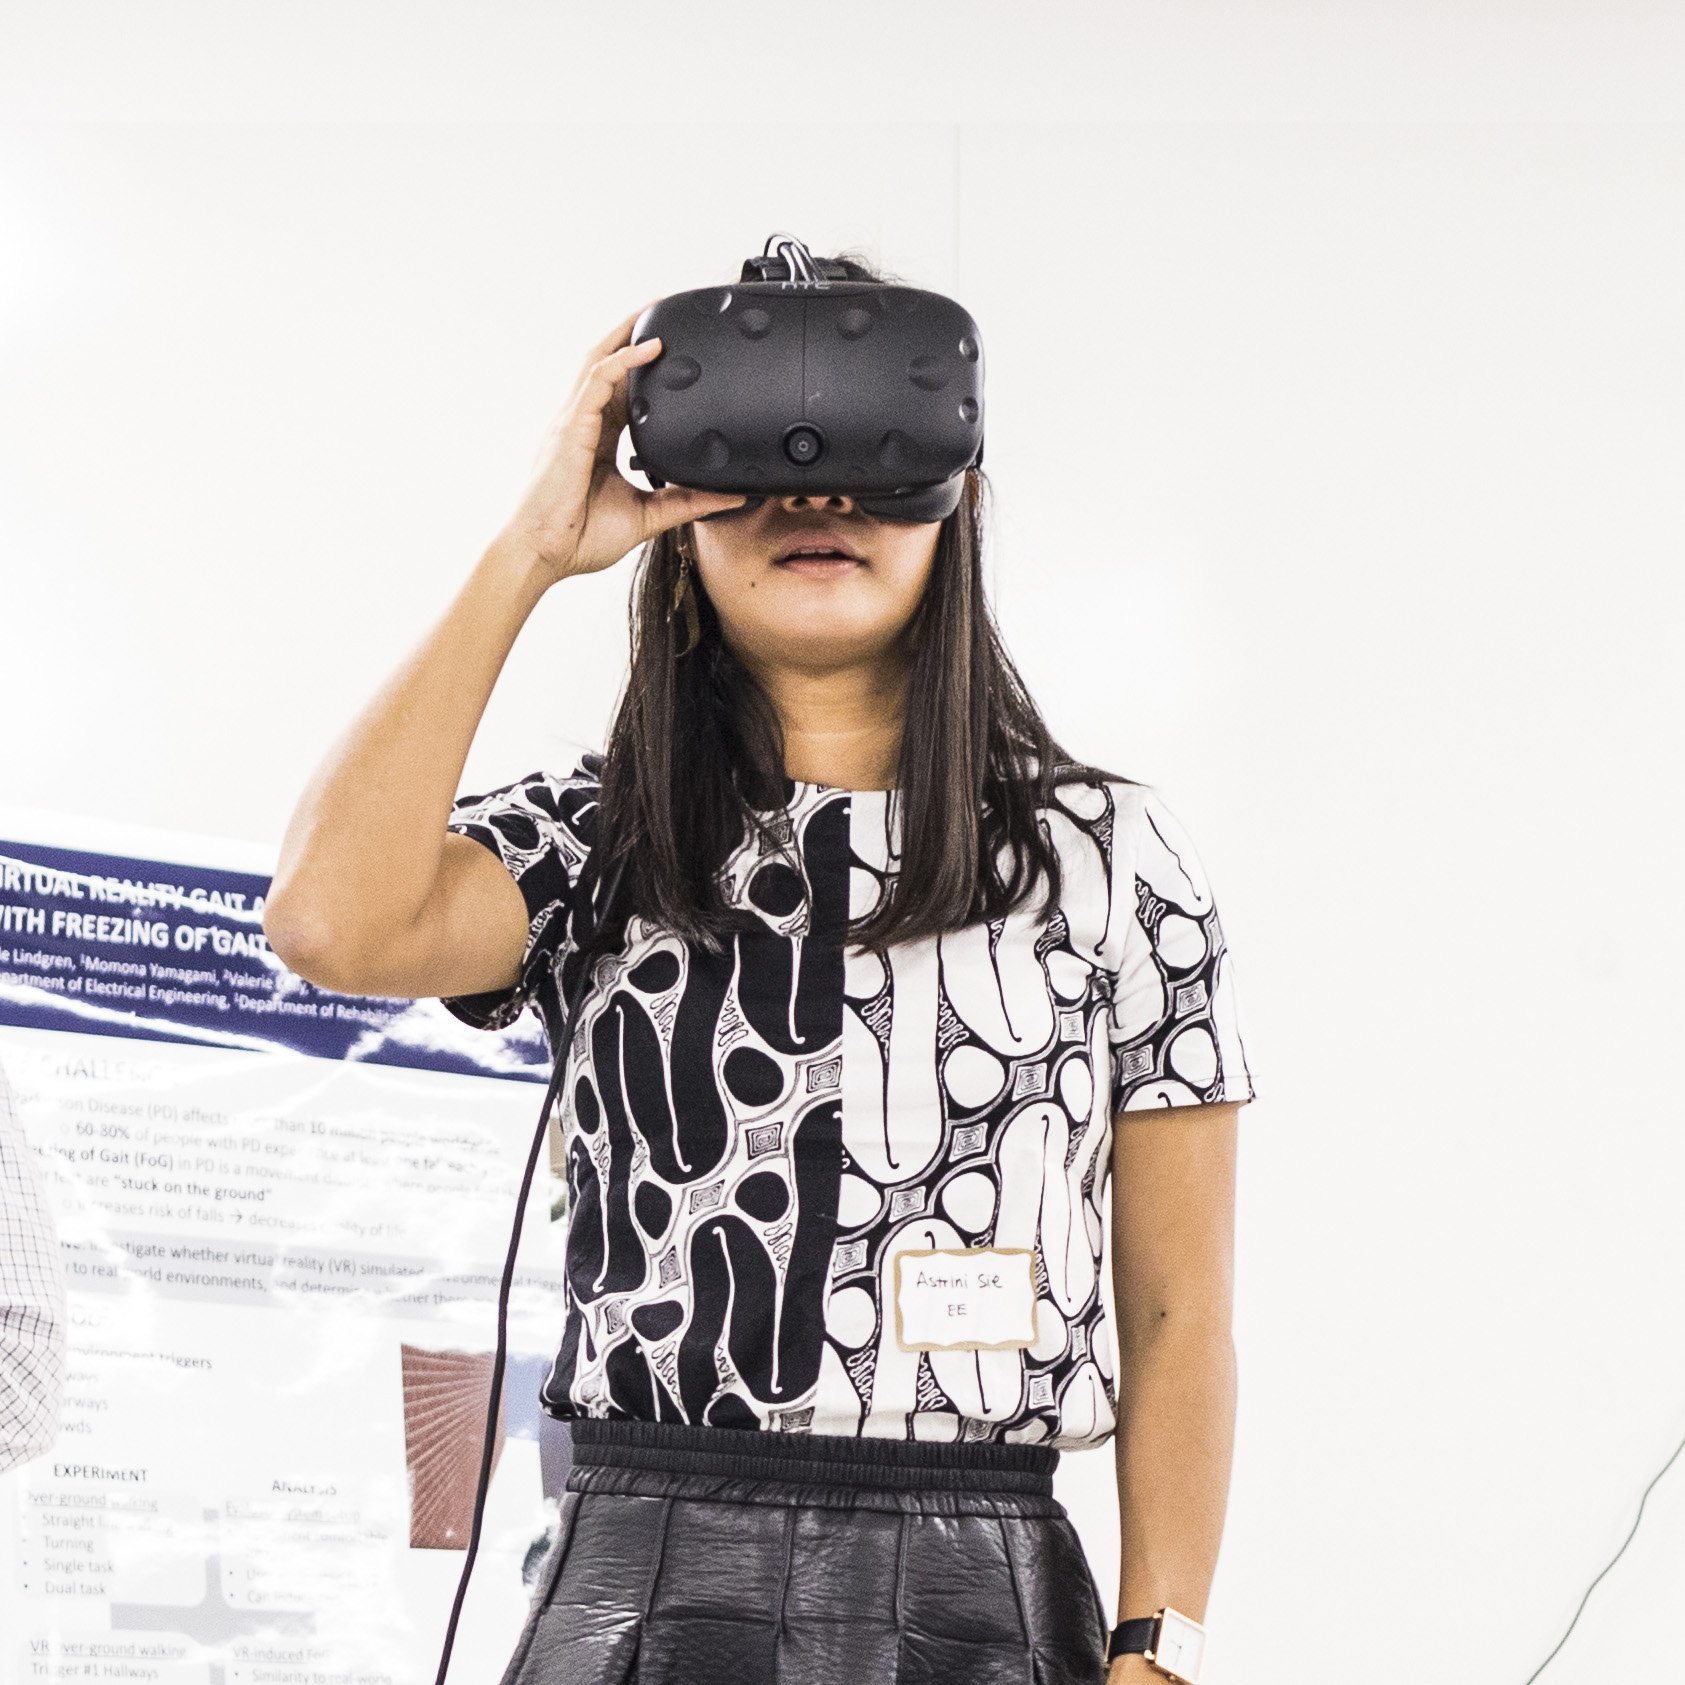 Image of student engaged with a virtual reality headset